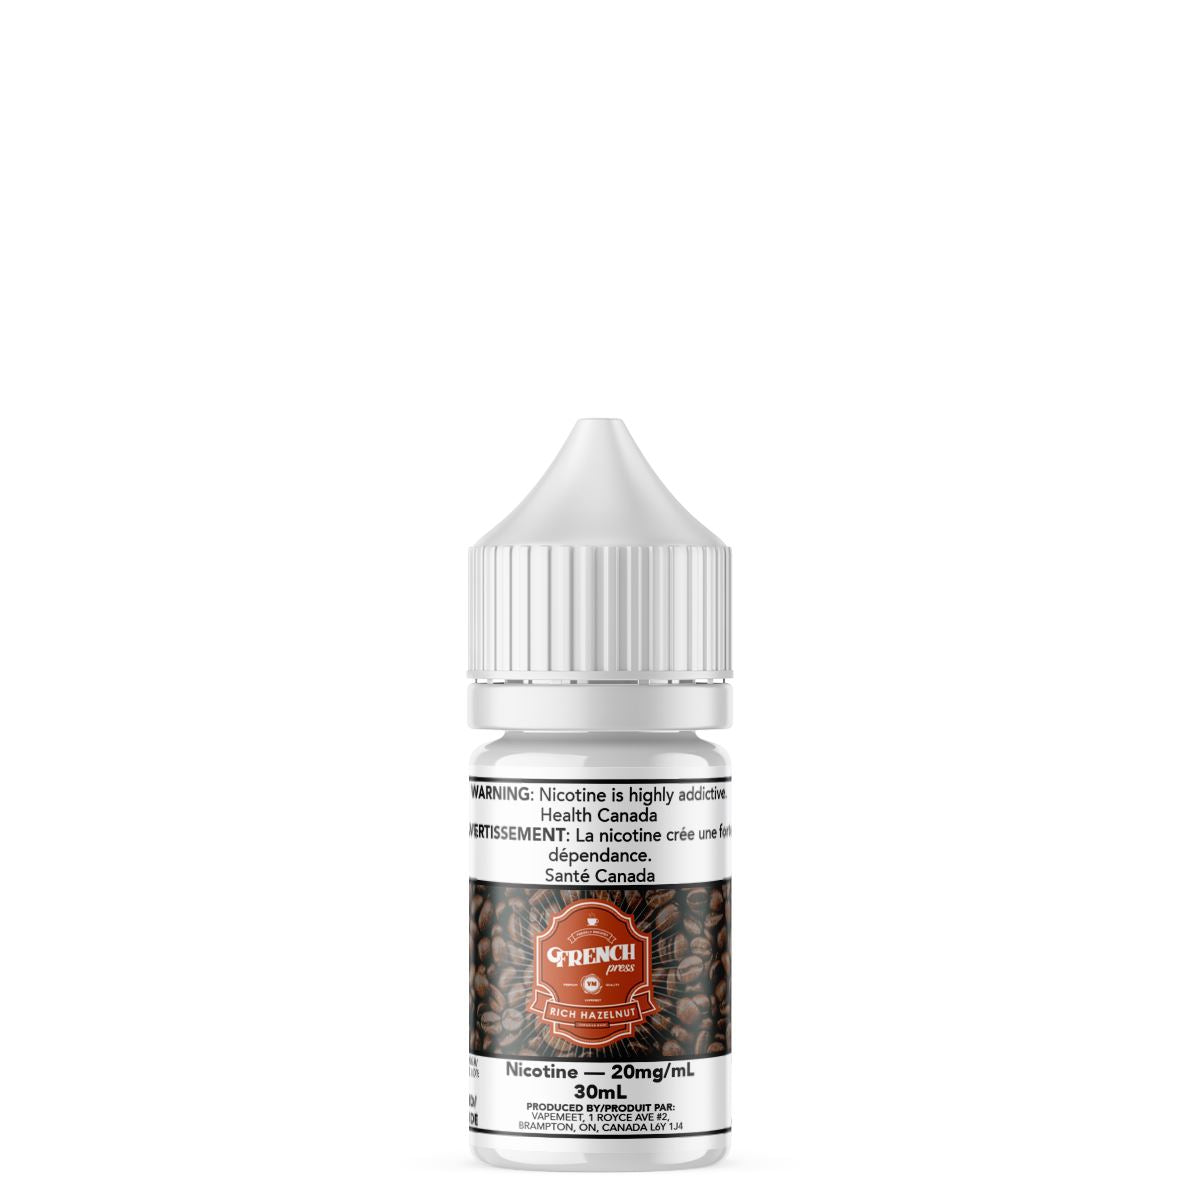 French Press Salted - Rich Hazelnut E-Liquid French Press Salted 30mL 20 mg/mL